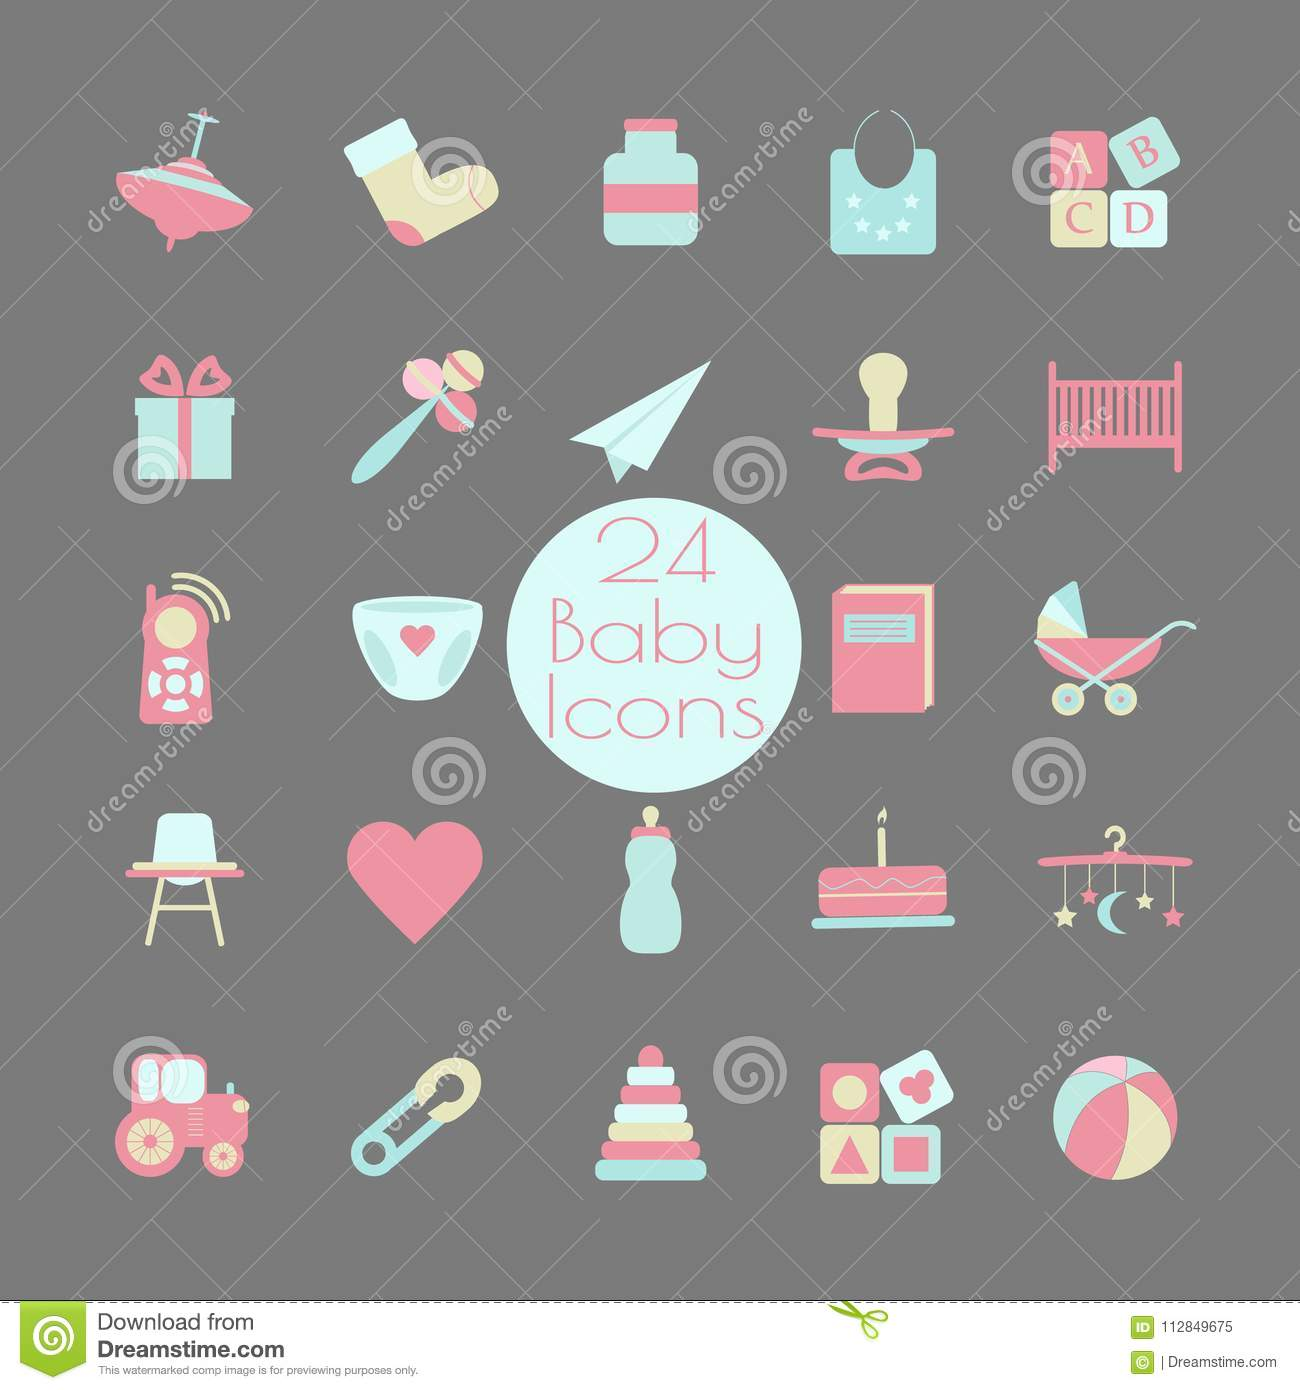 Big web icon set. Baby, toy, feed and care. Stock illustration.